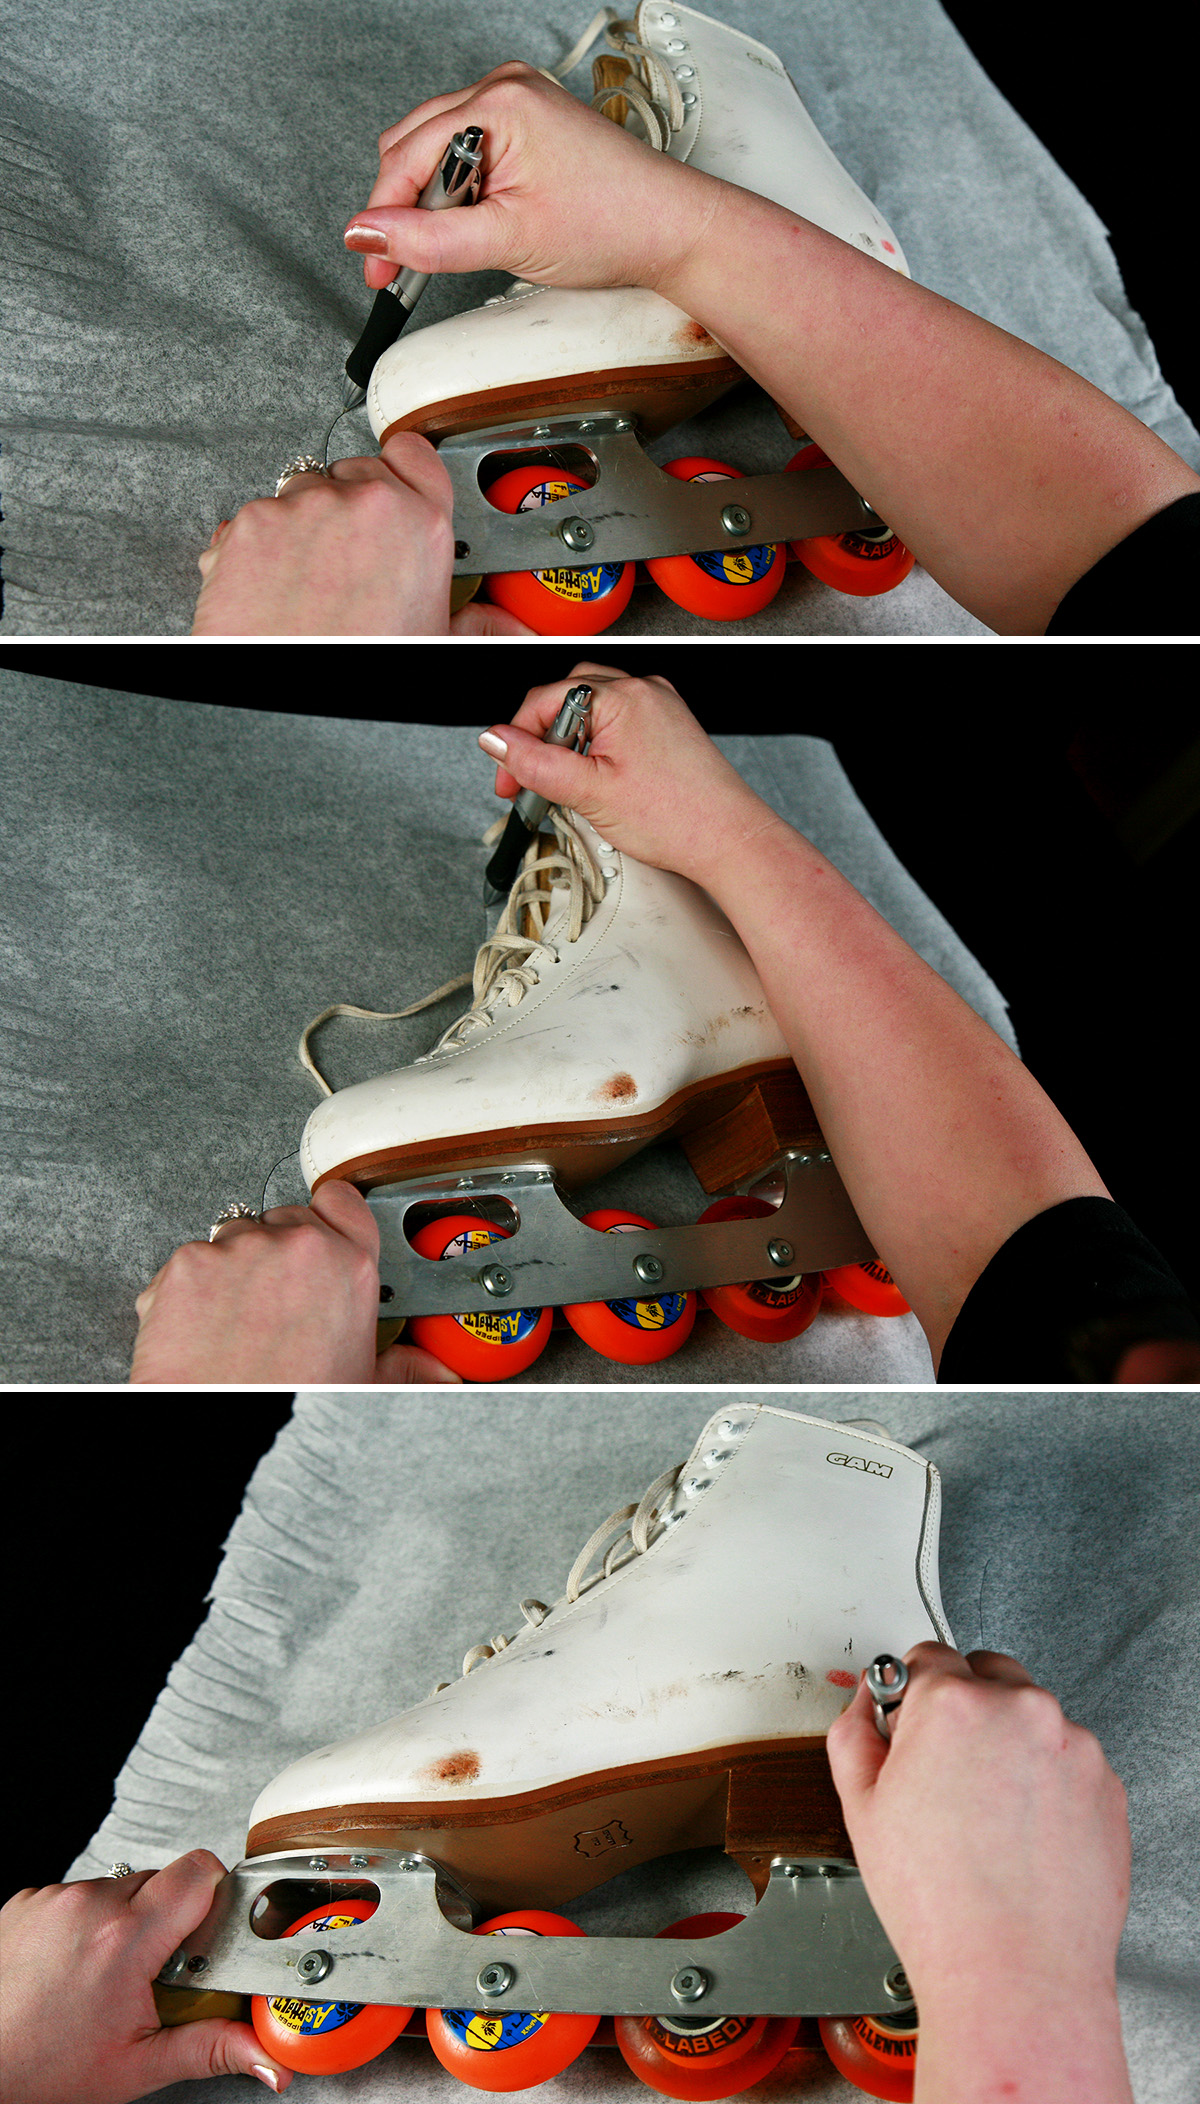 A three photo compilation image. It shows a white inline roller figure skate is pictured against a sheet of translucent white paper, being traced.